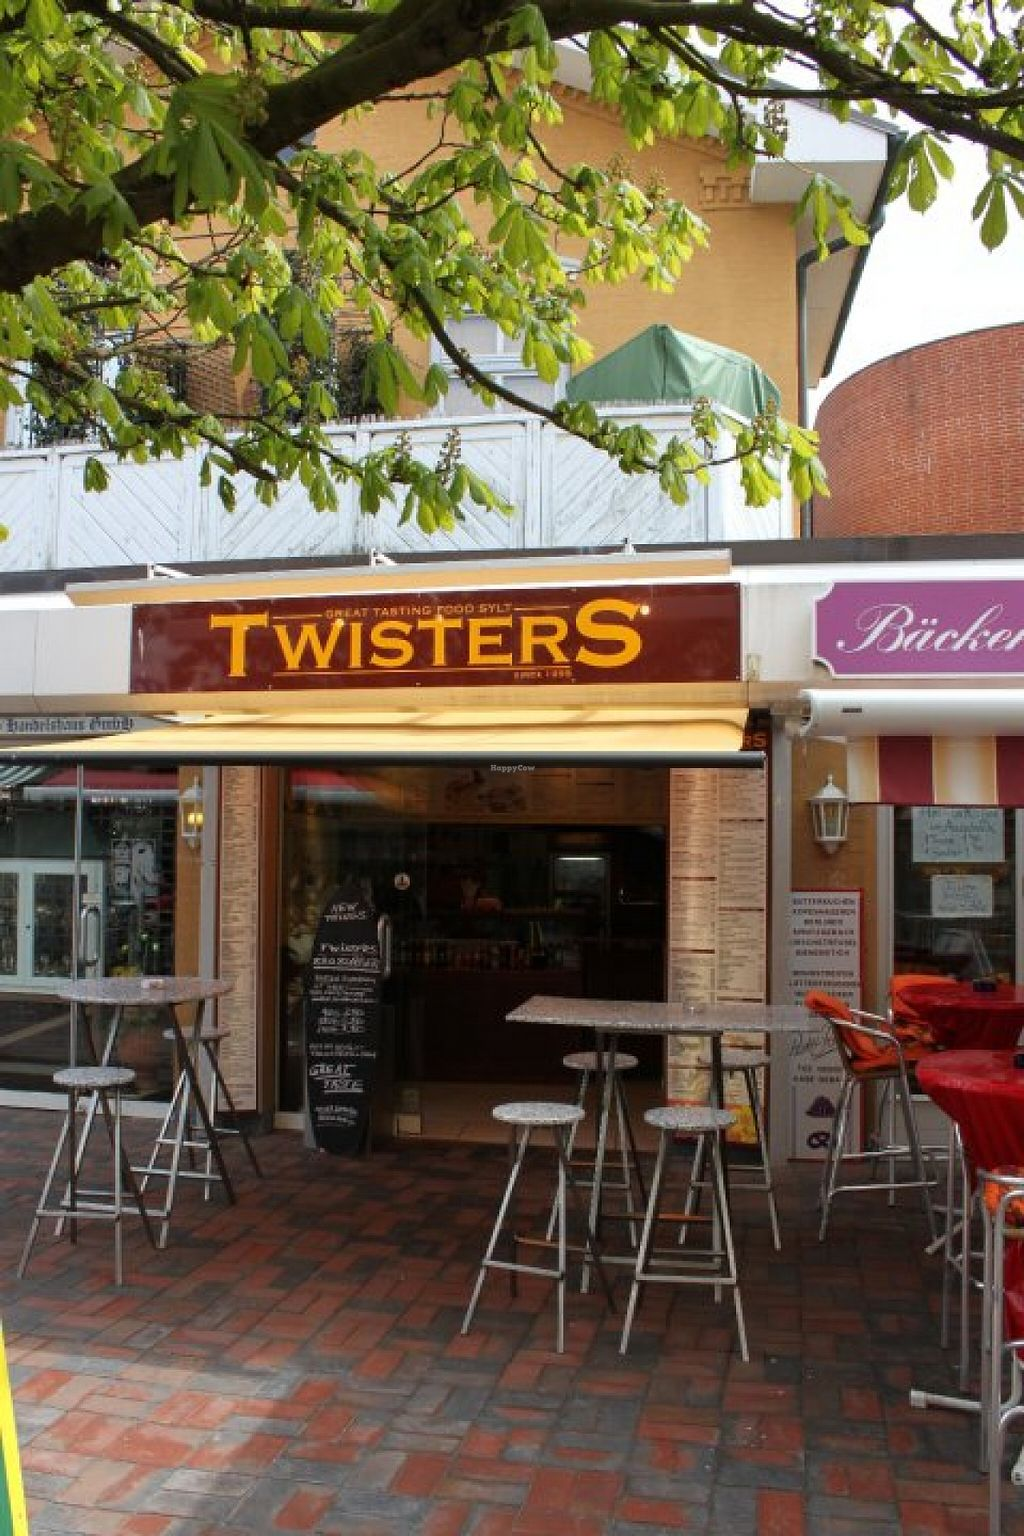 """Photo of Twisters Sylt  by <a href=""""/members/profile/community"""">community</a> <br/>Twisters Sylt <br/> August 26, 2015  - <a href='/contact/abuse/image/61963/115269'>Report</a>"""